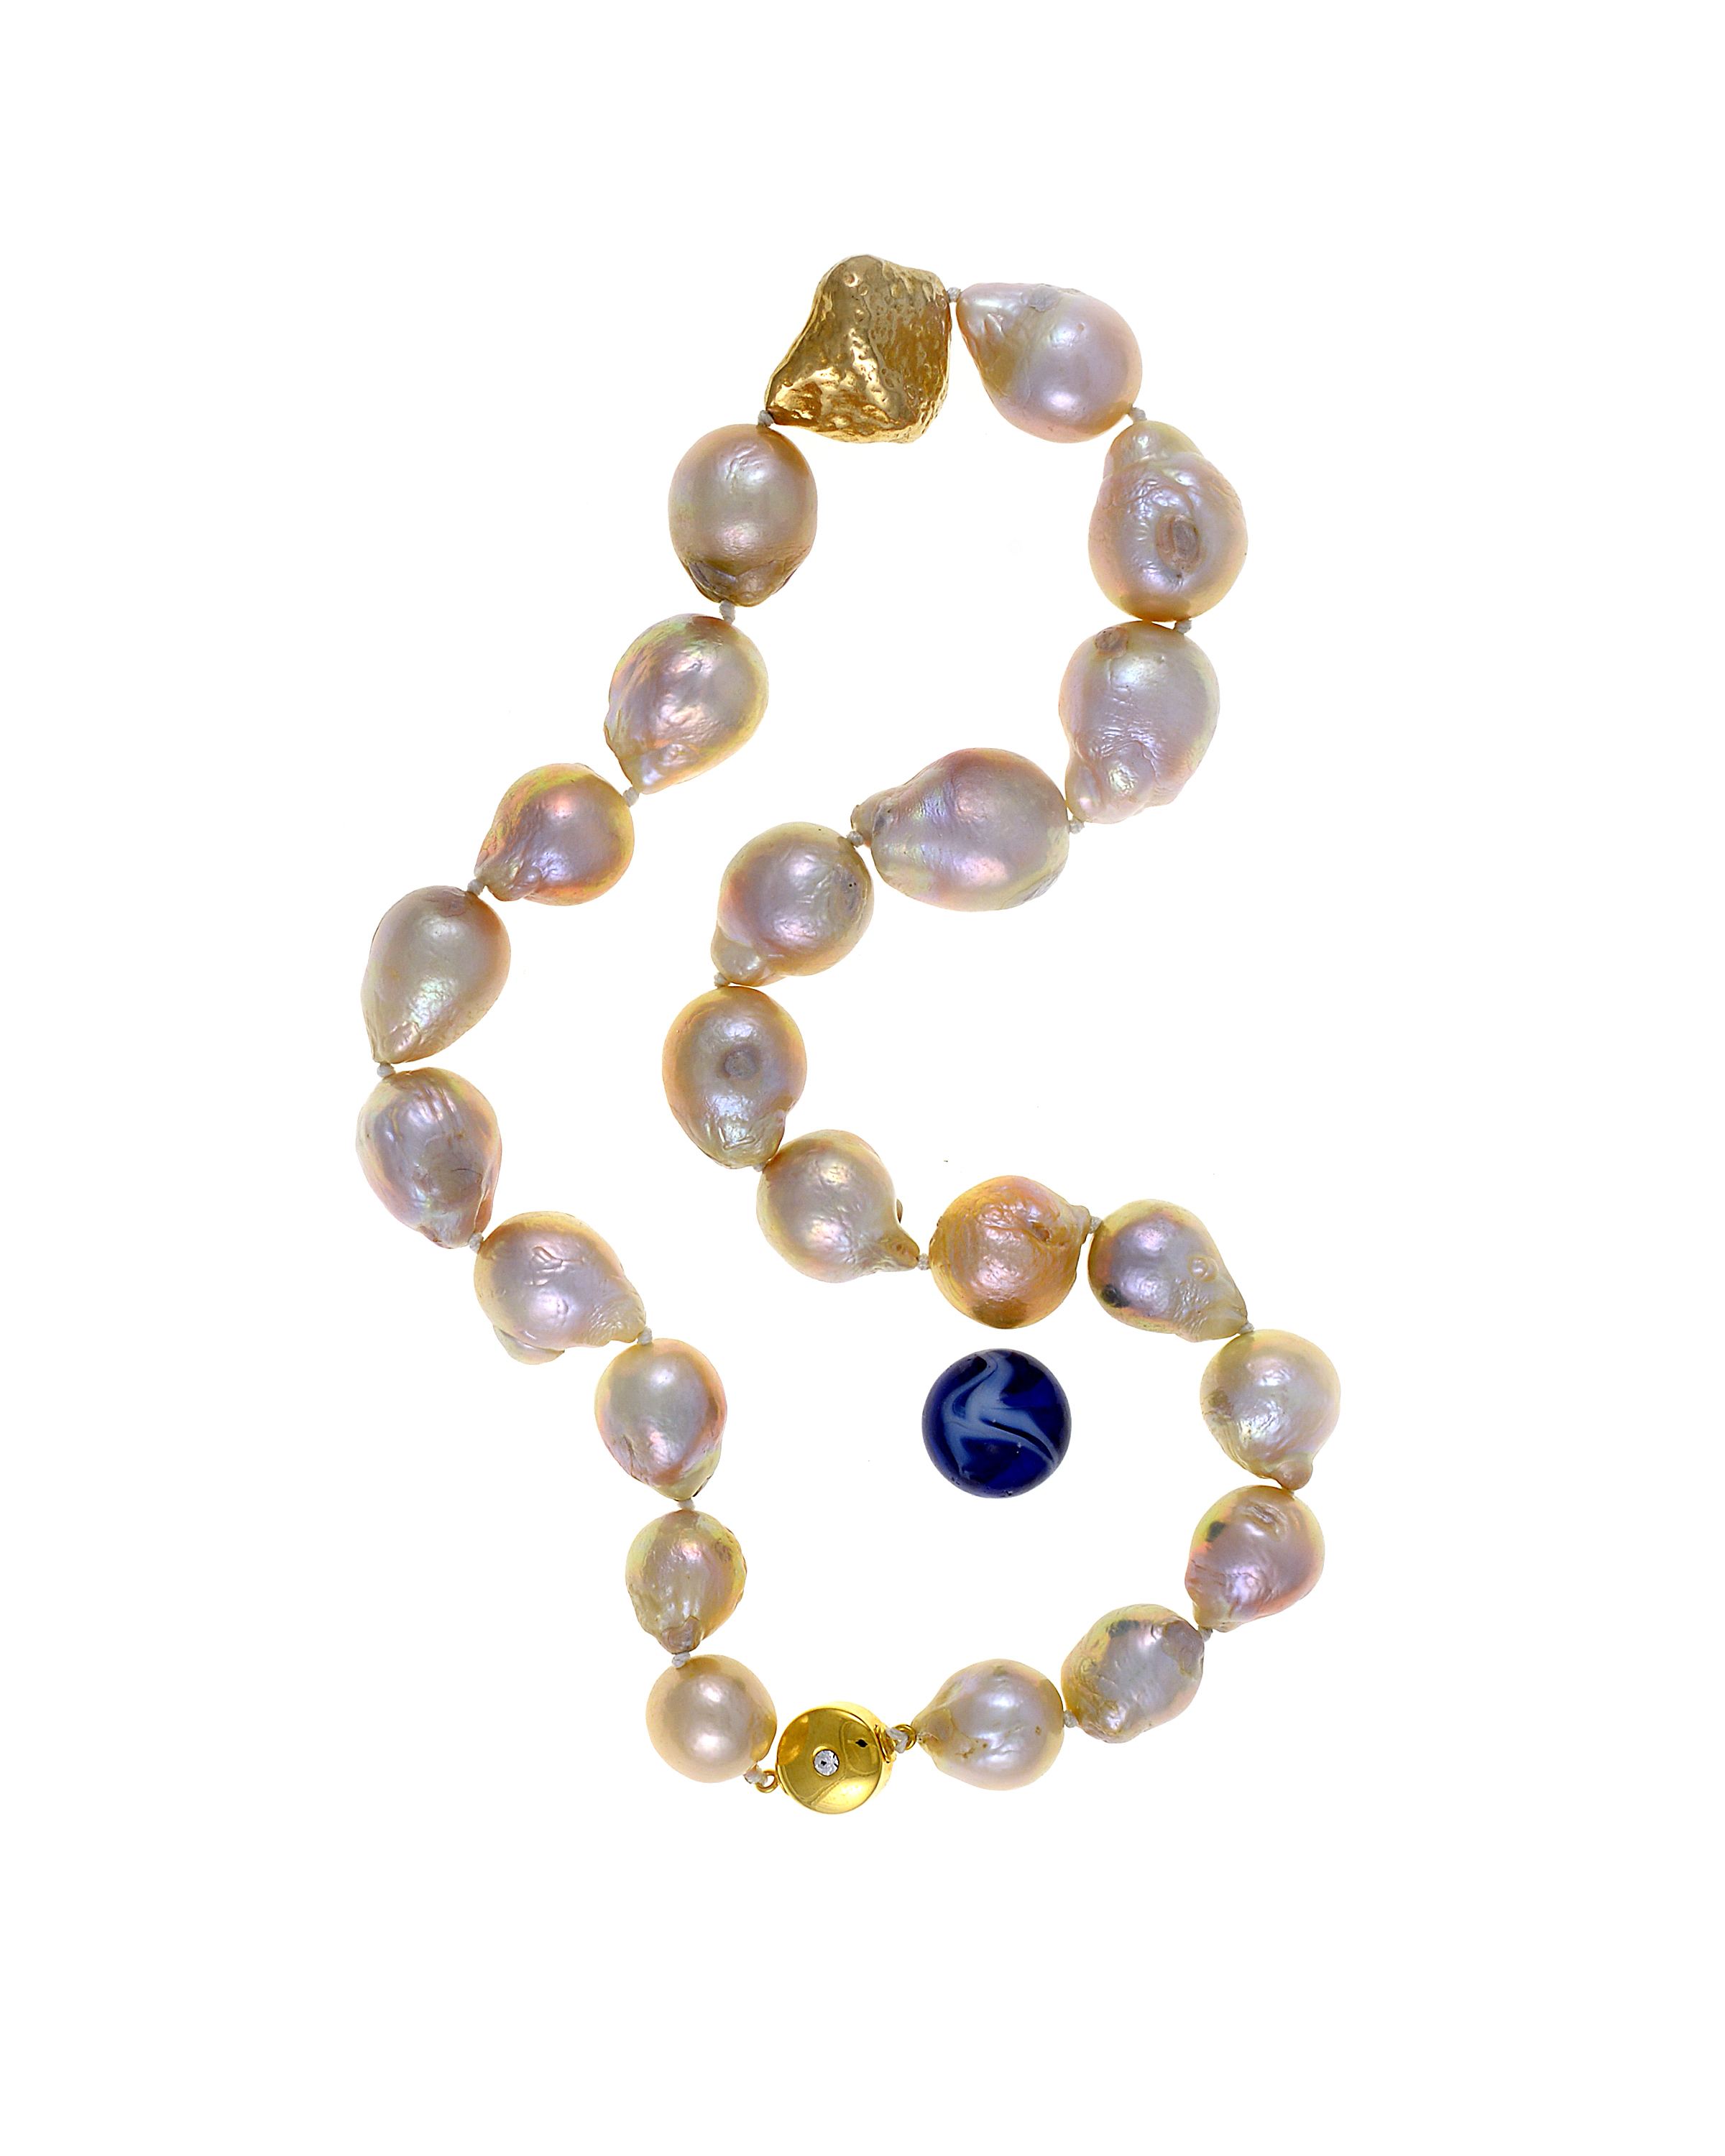 sizing size pearls learn more pearl types